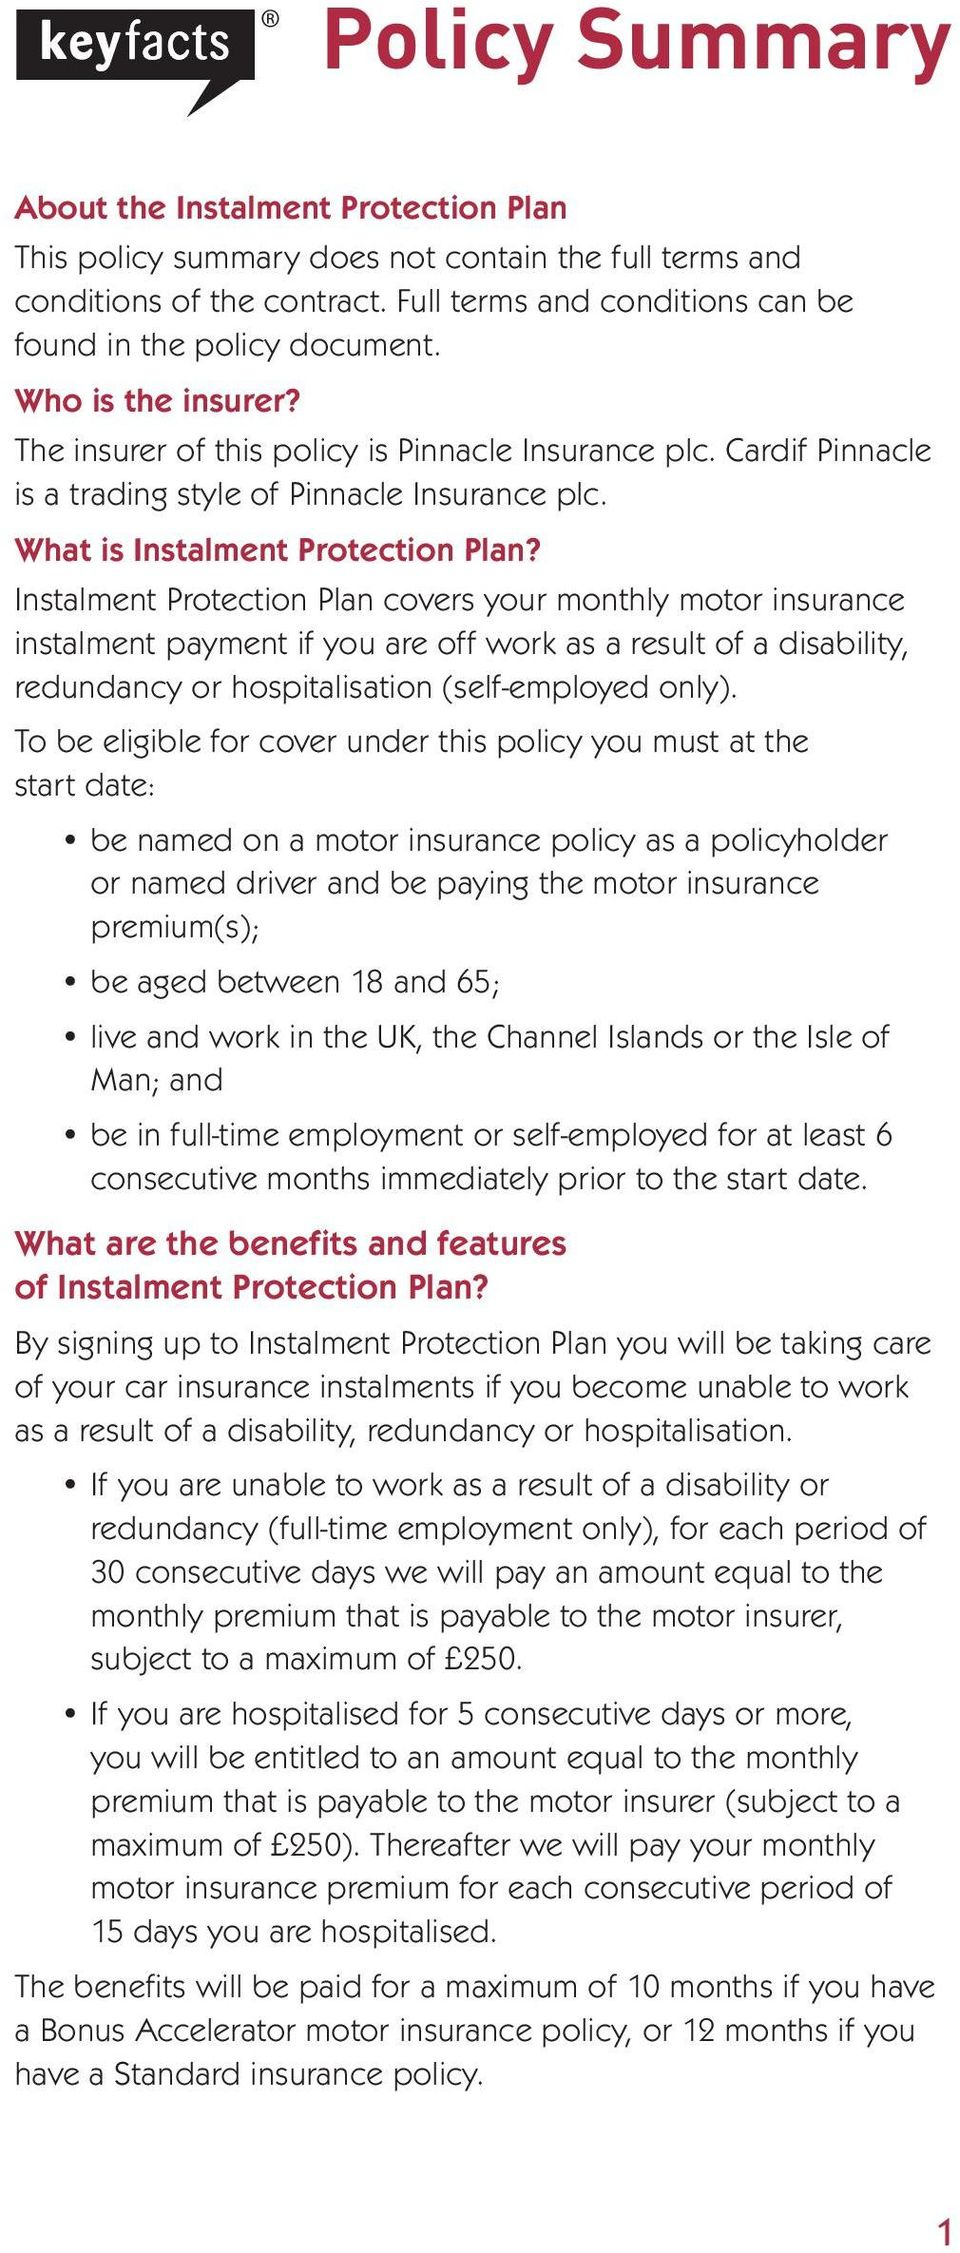 Instalment Protection Plan covers your monthly motor insurance instalment payment if you are off work as a result of a disability, redundancy or hospitalisation (self-employed only).